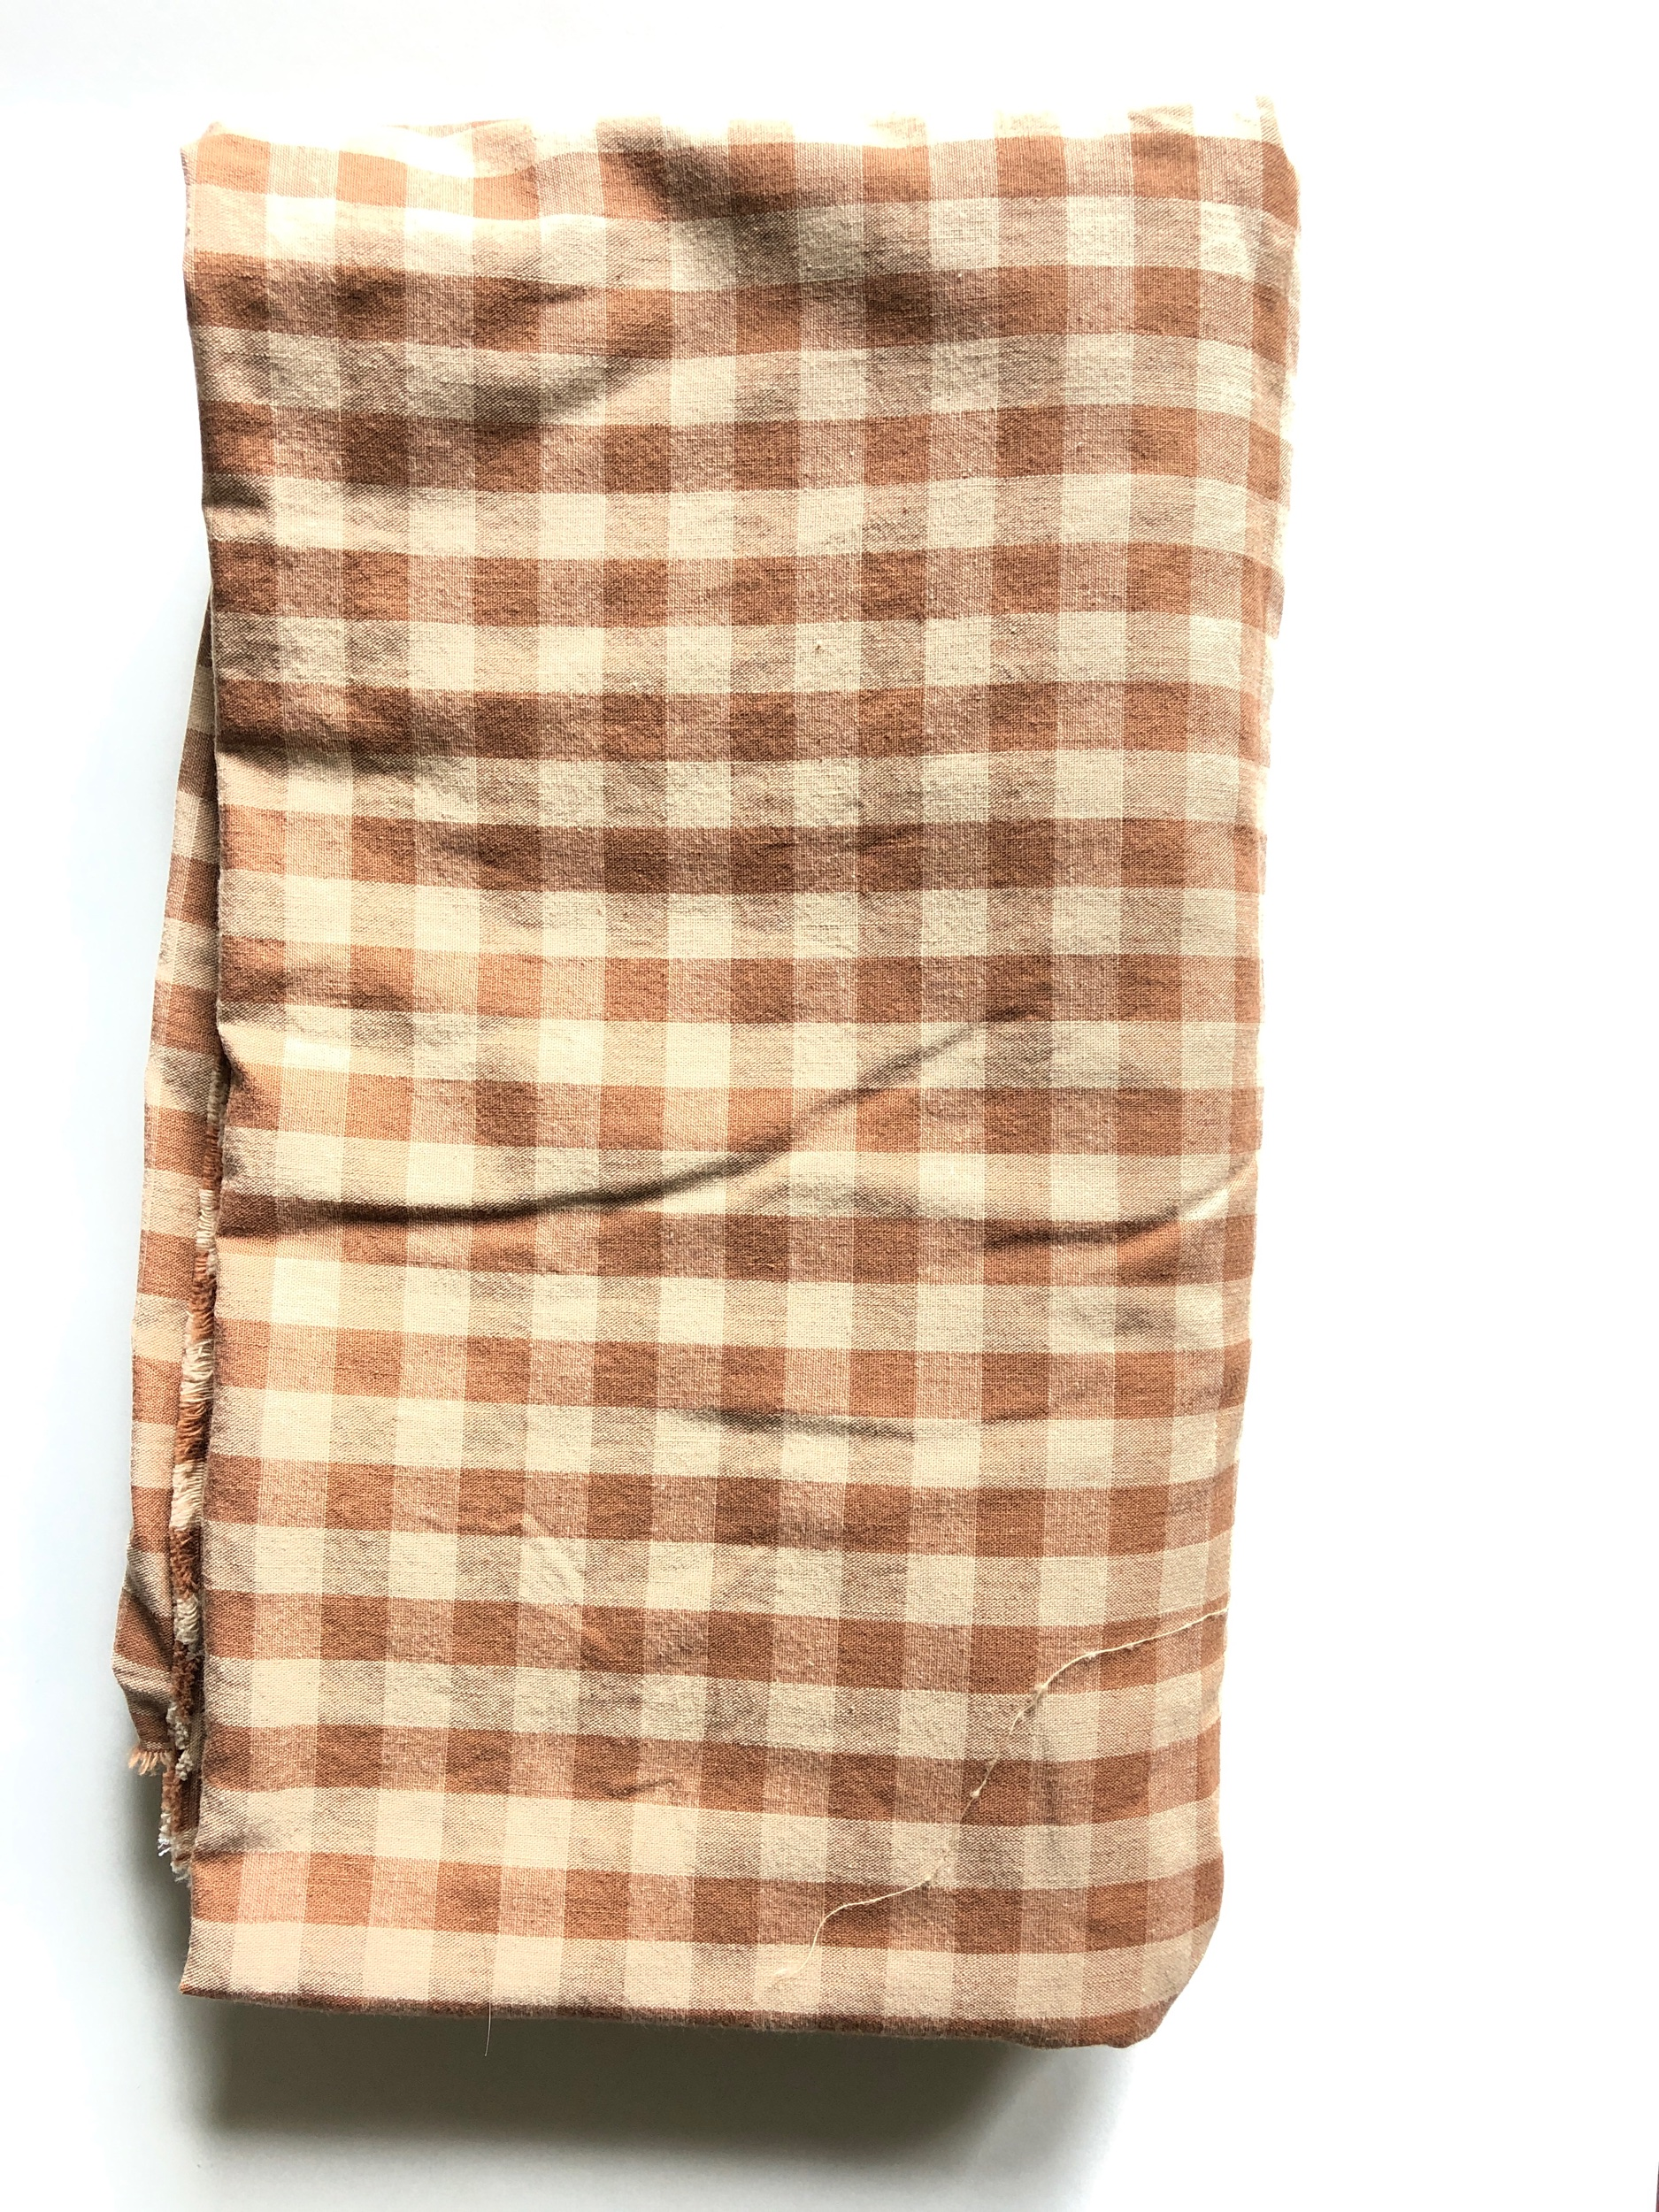 014 big brown gingham